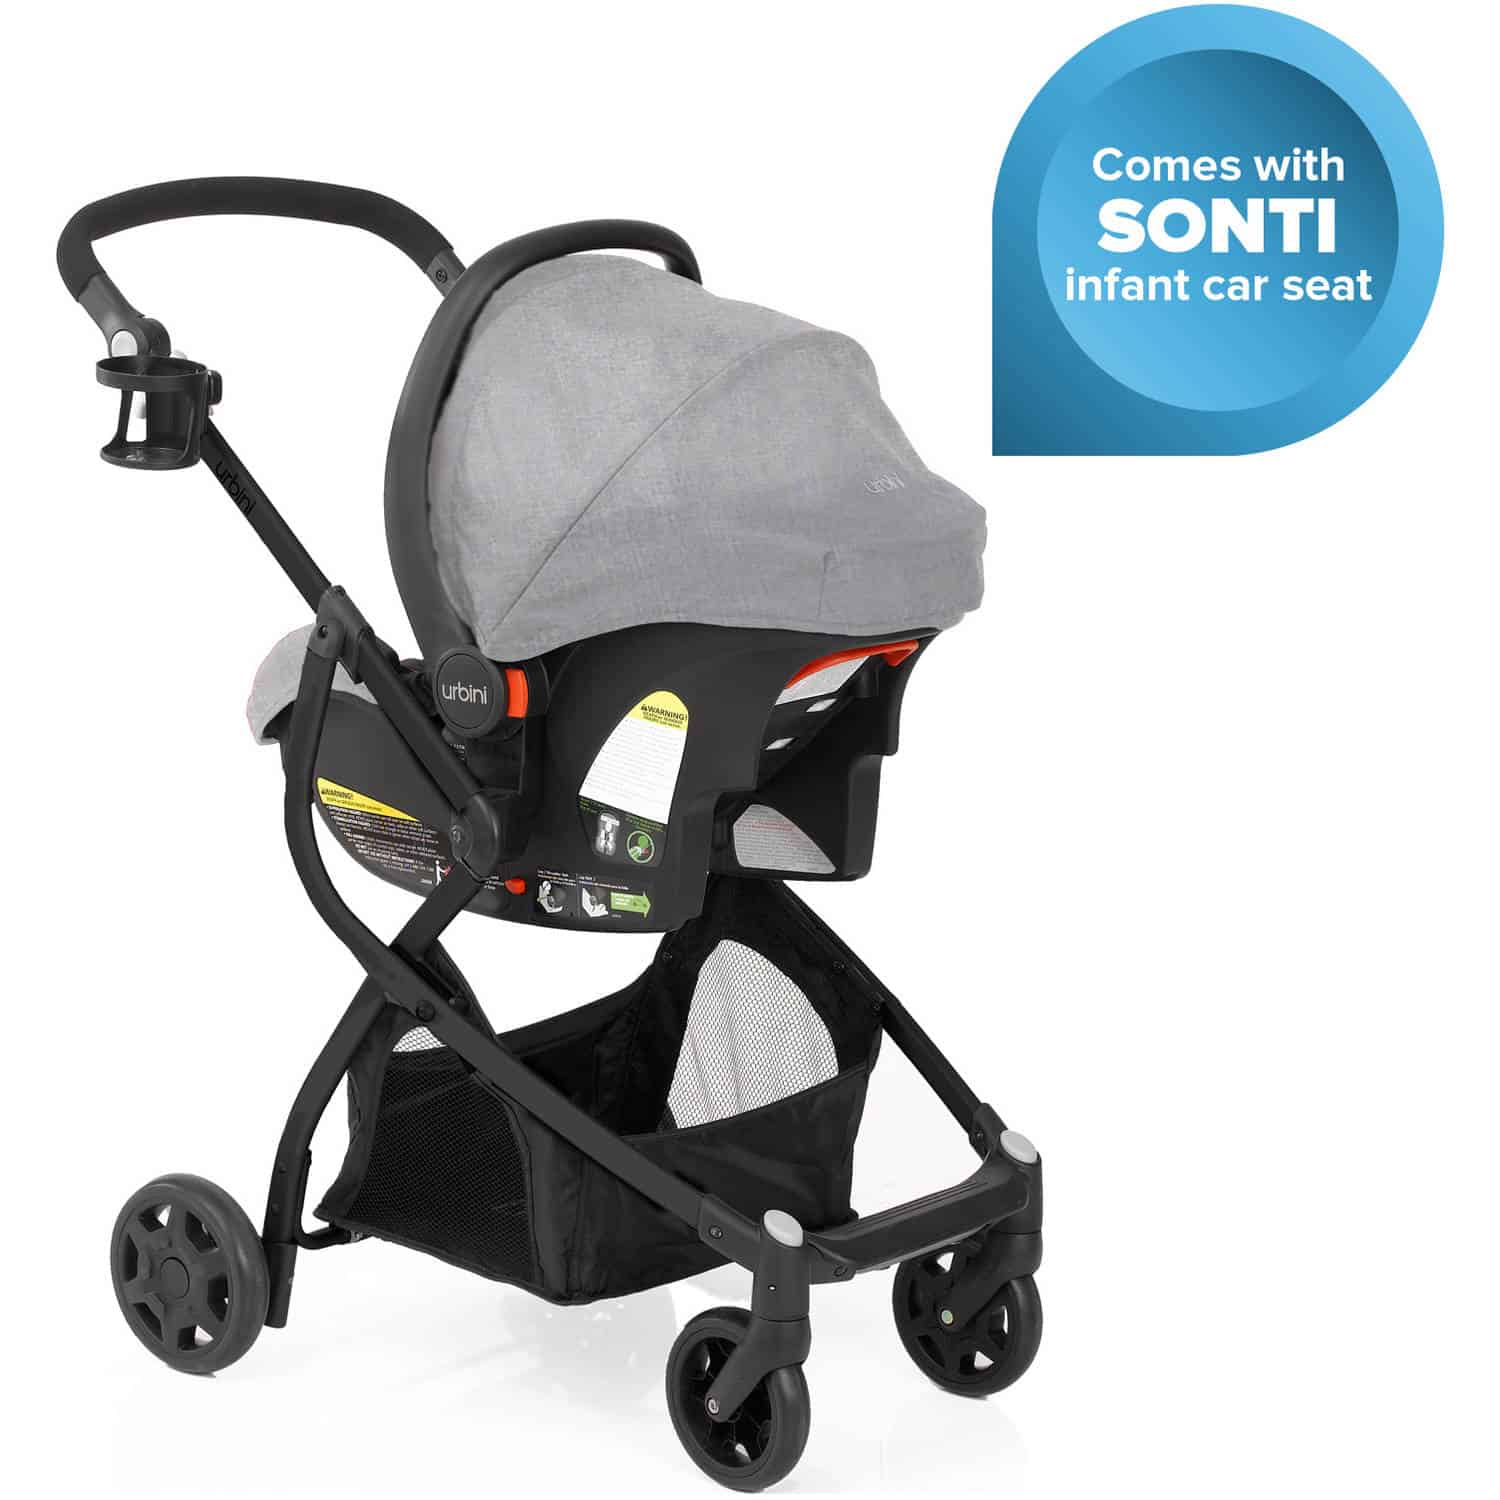 The Urbini Omni Plus 3-in-1 Travel System